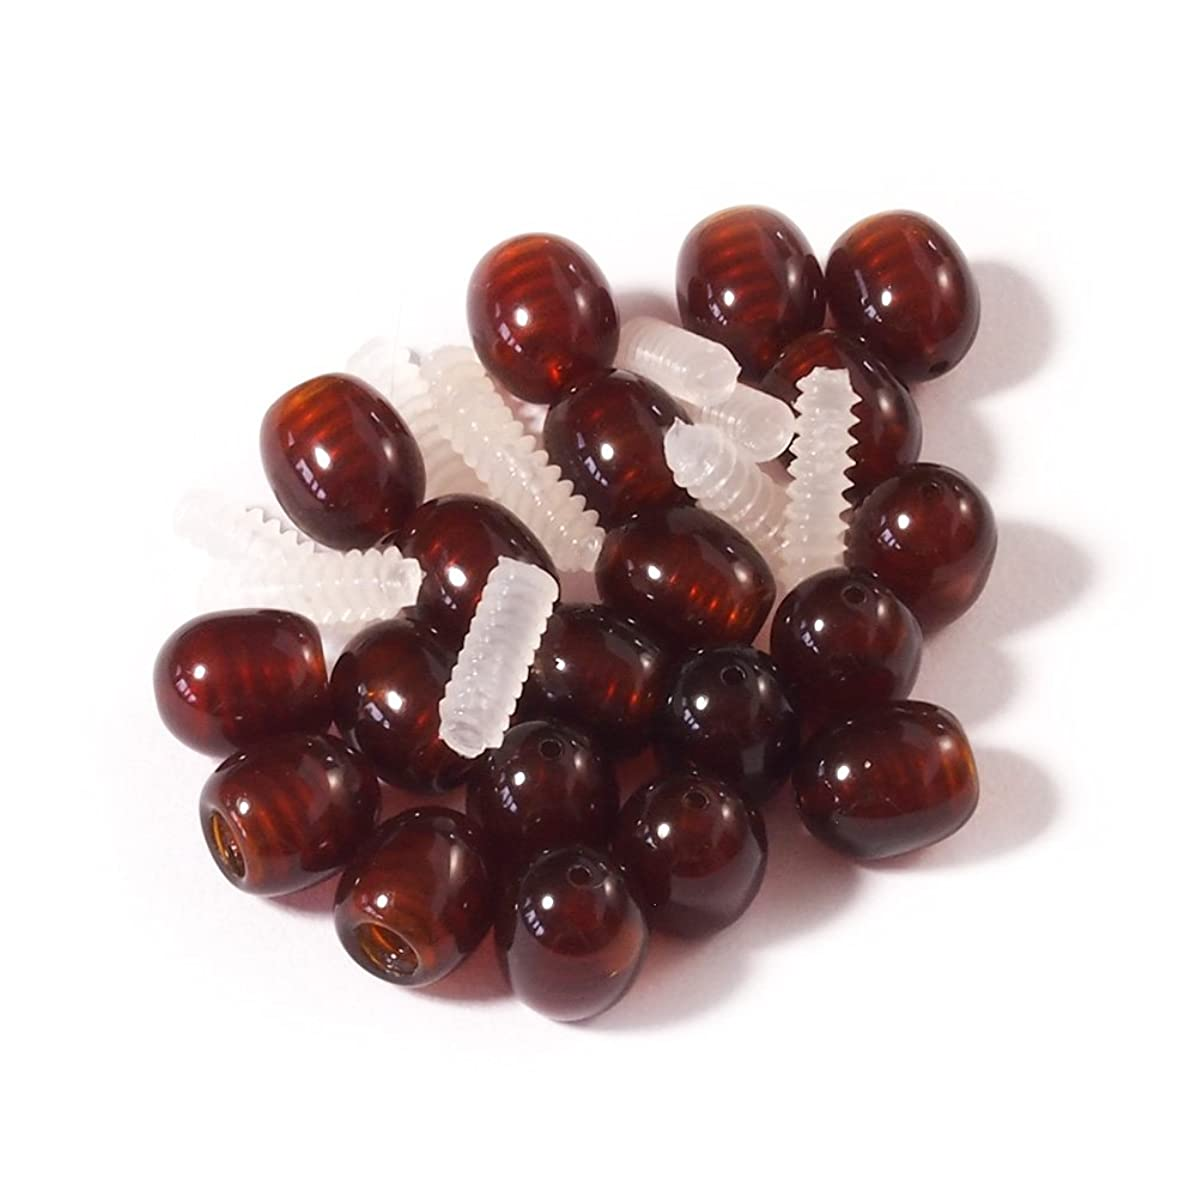 Screw Clasp 10 pcs Dark Cognac for Jewelry Making of Baltic Amber Necklaces and Bracelets